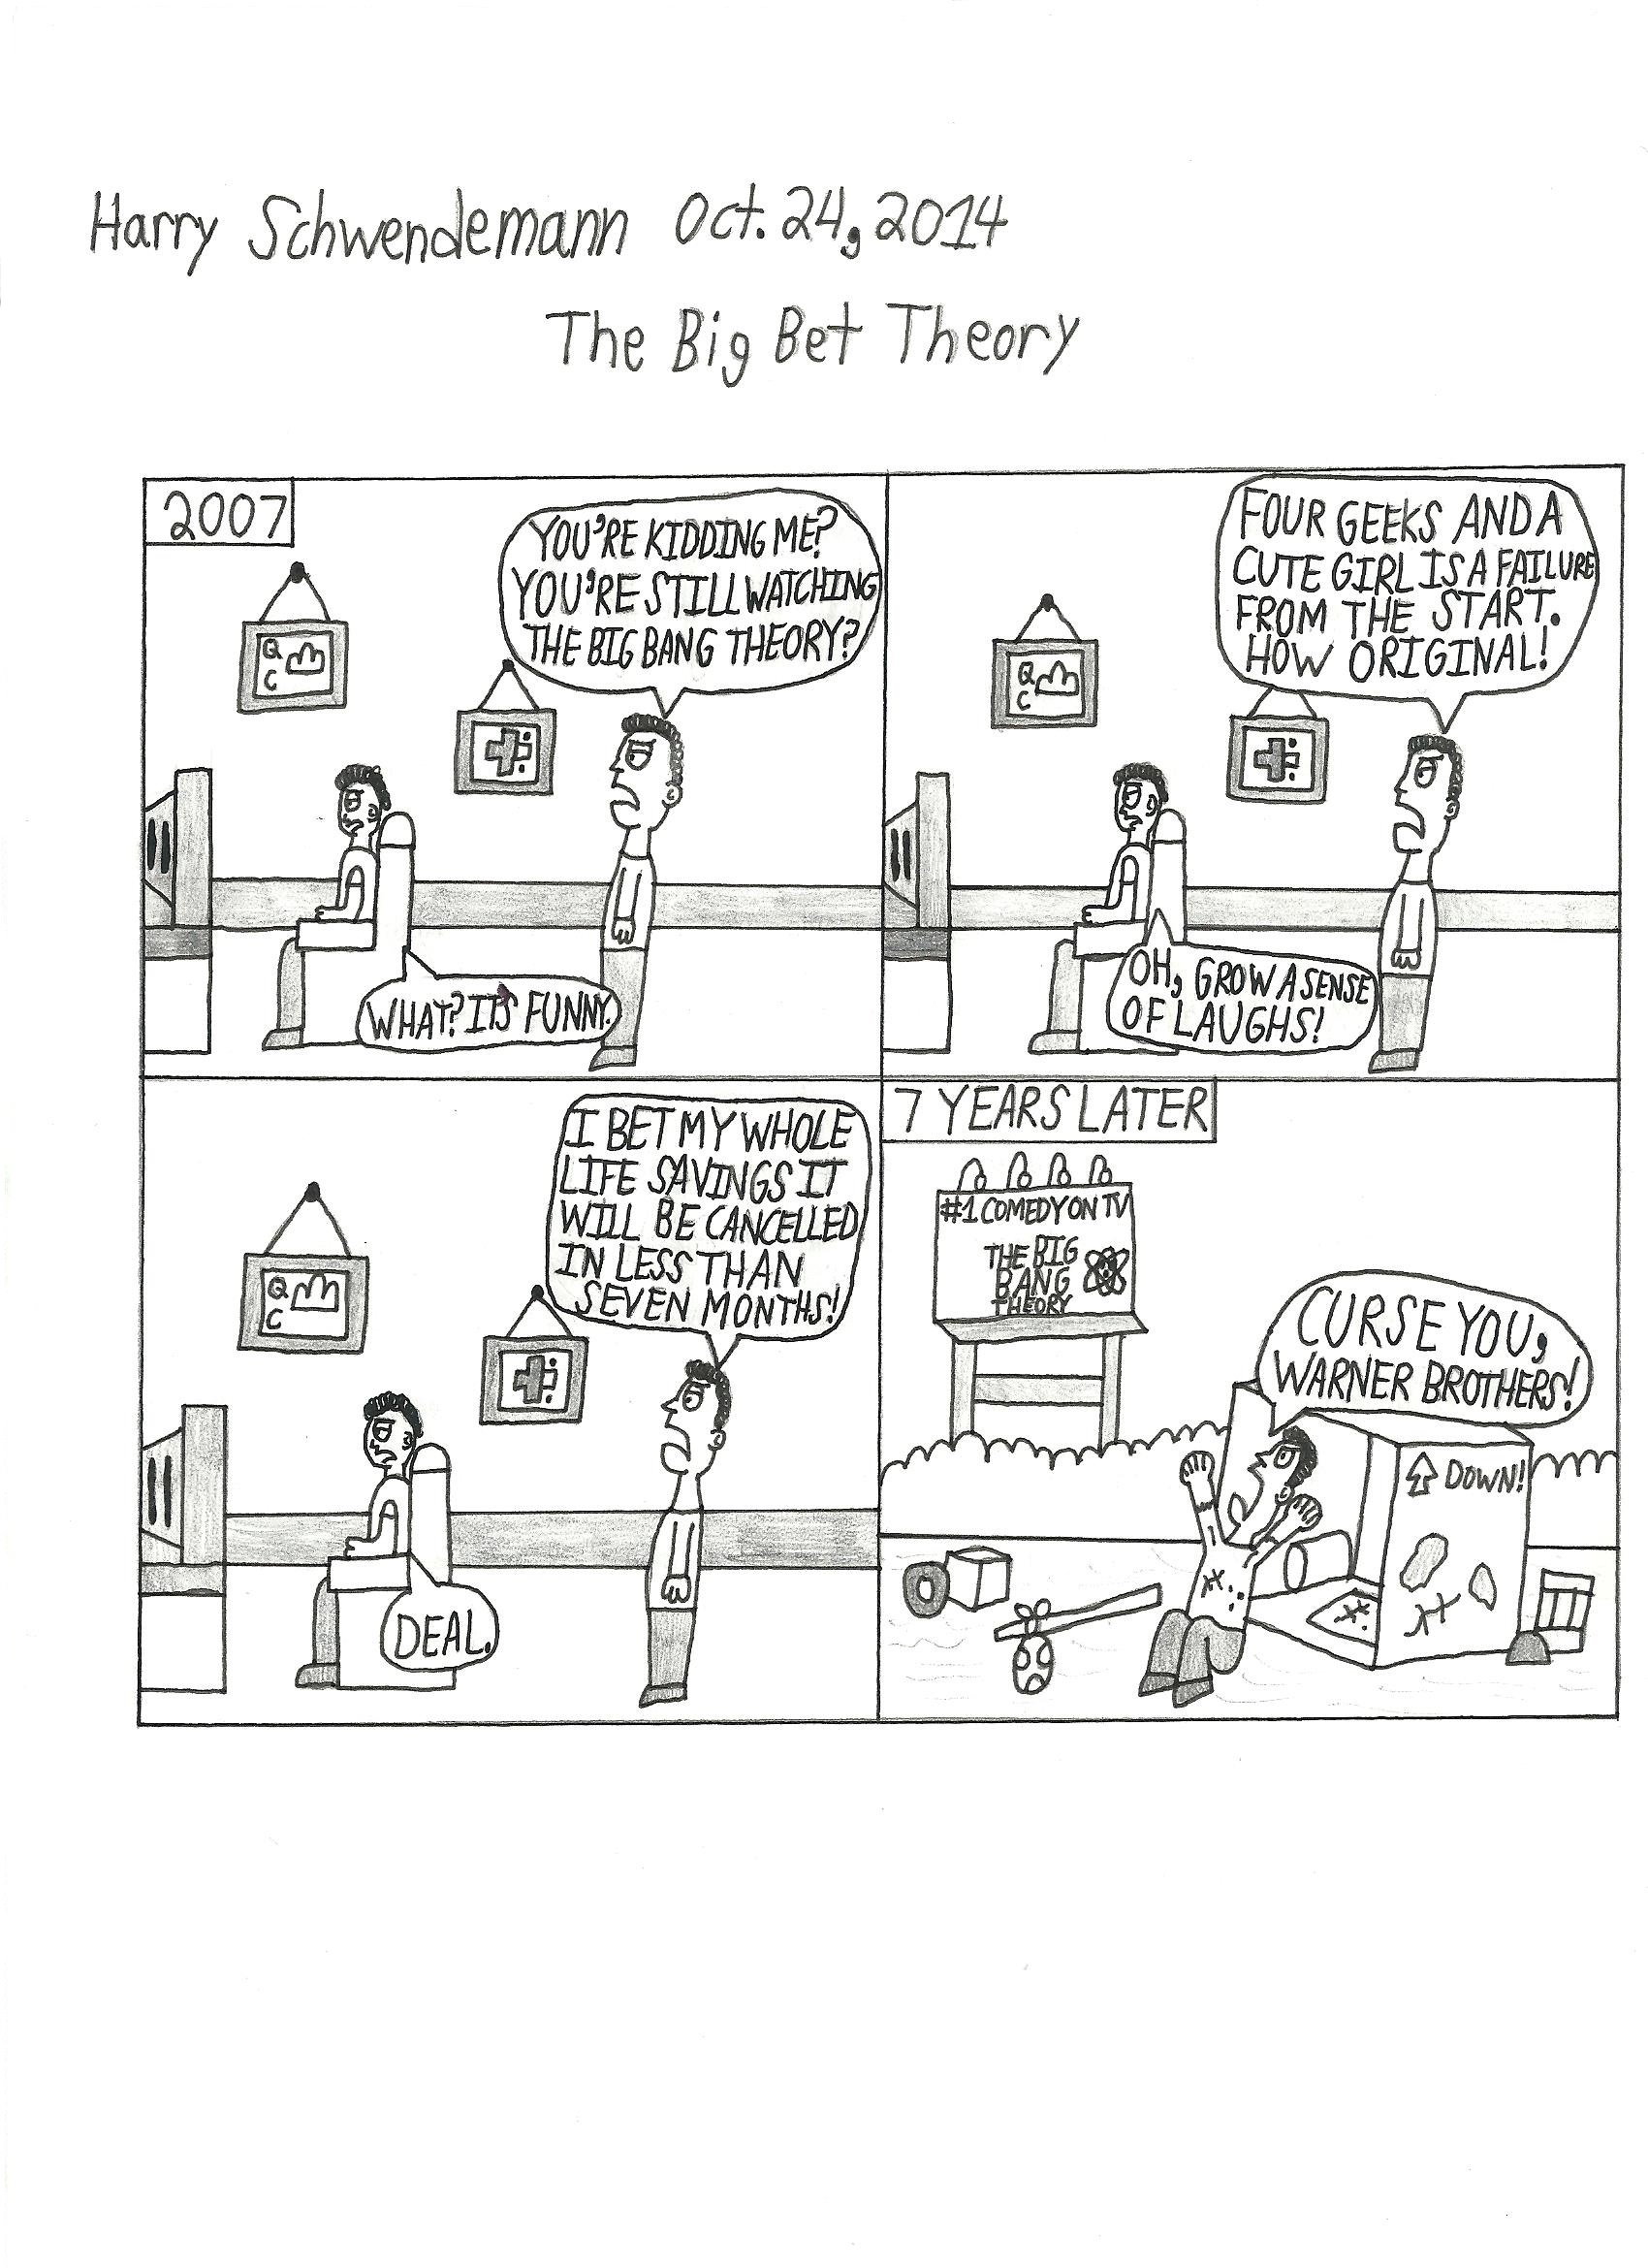 The Big Bet Theory